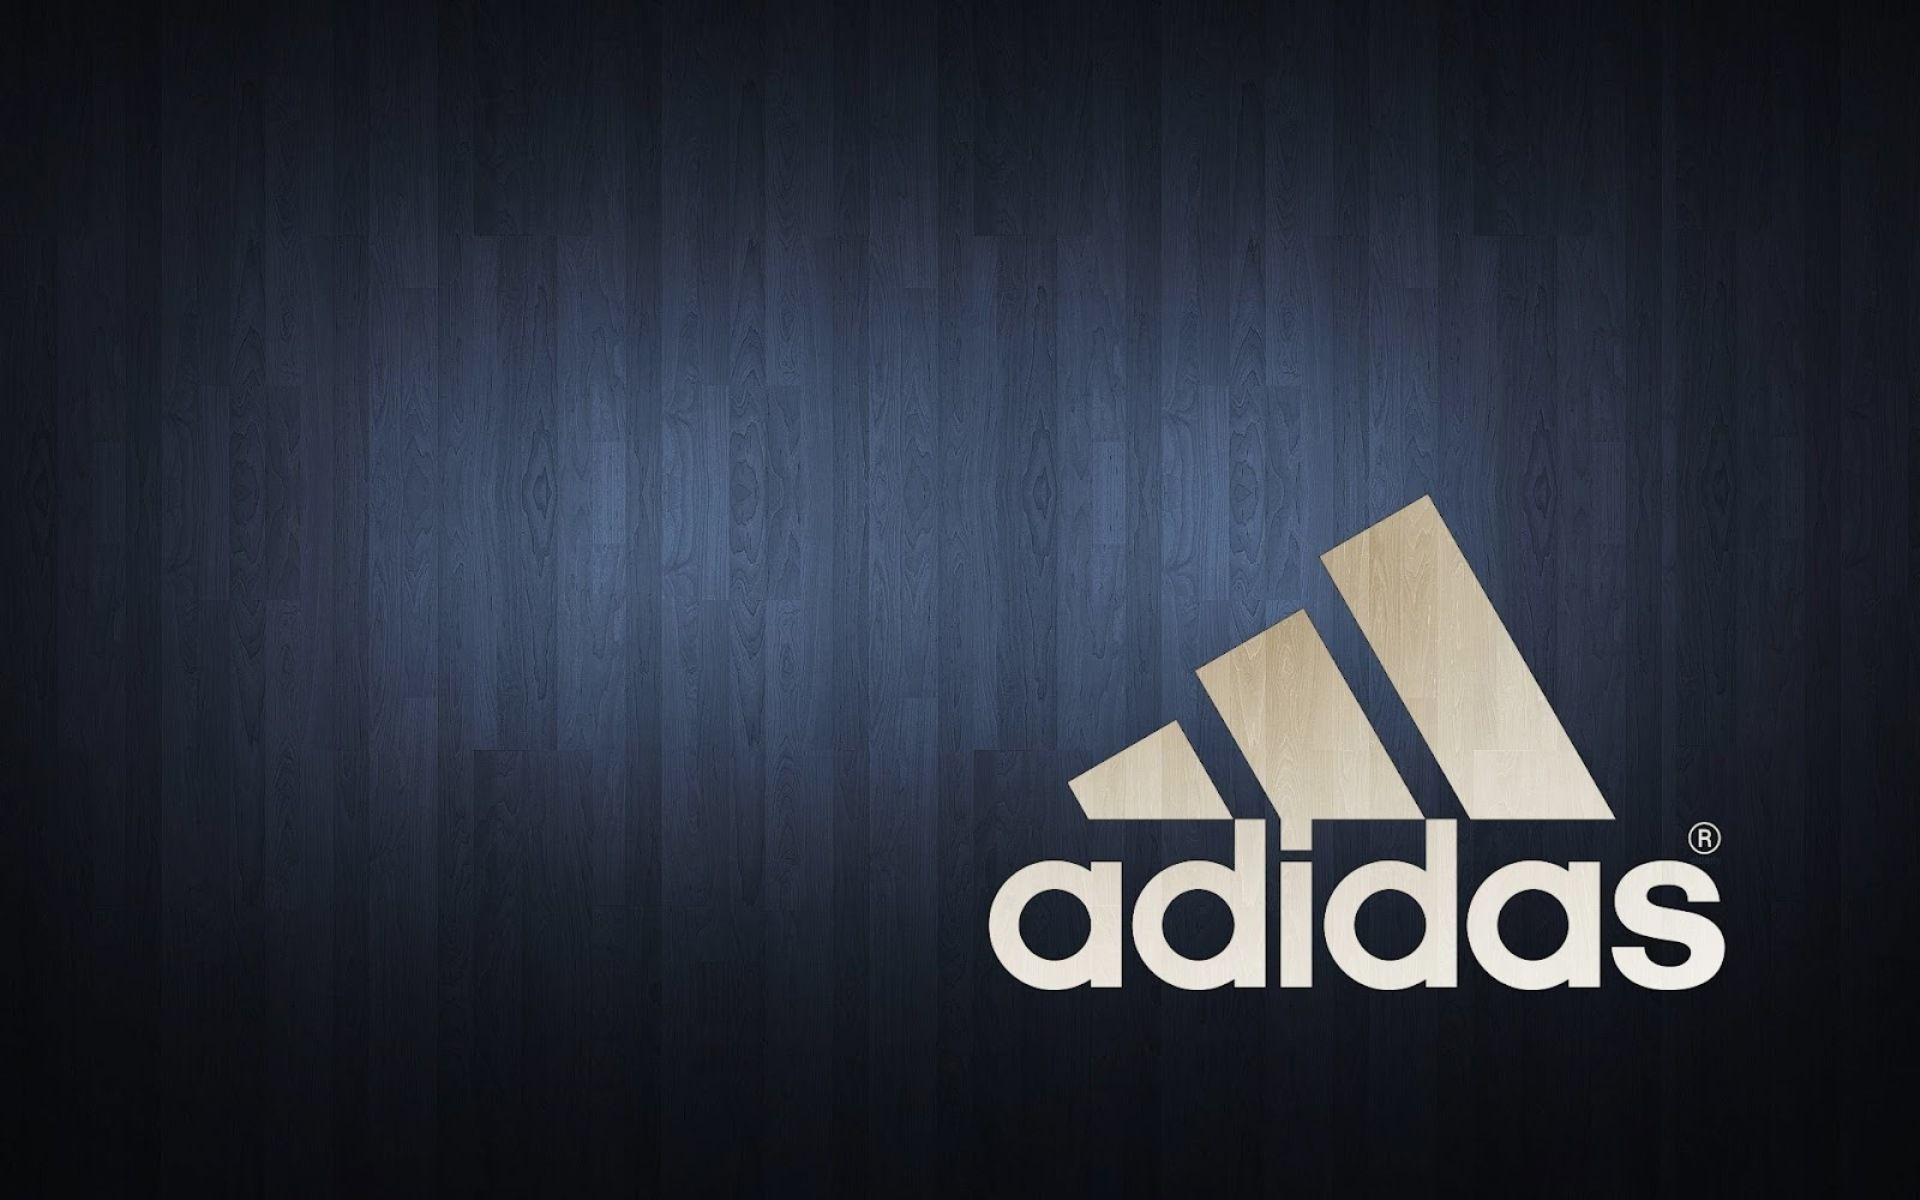 Adidas Wallpaper Download